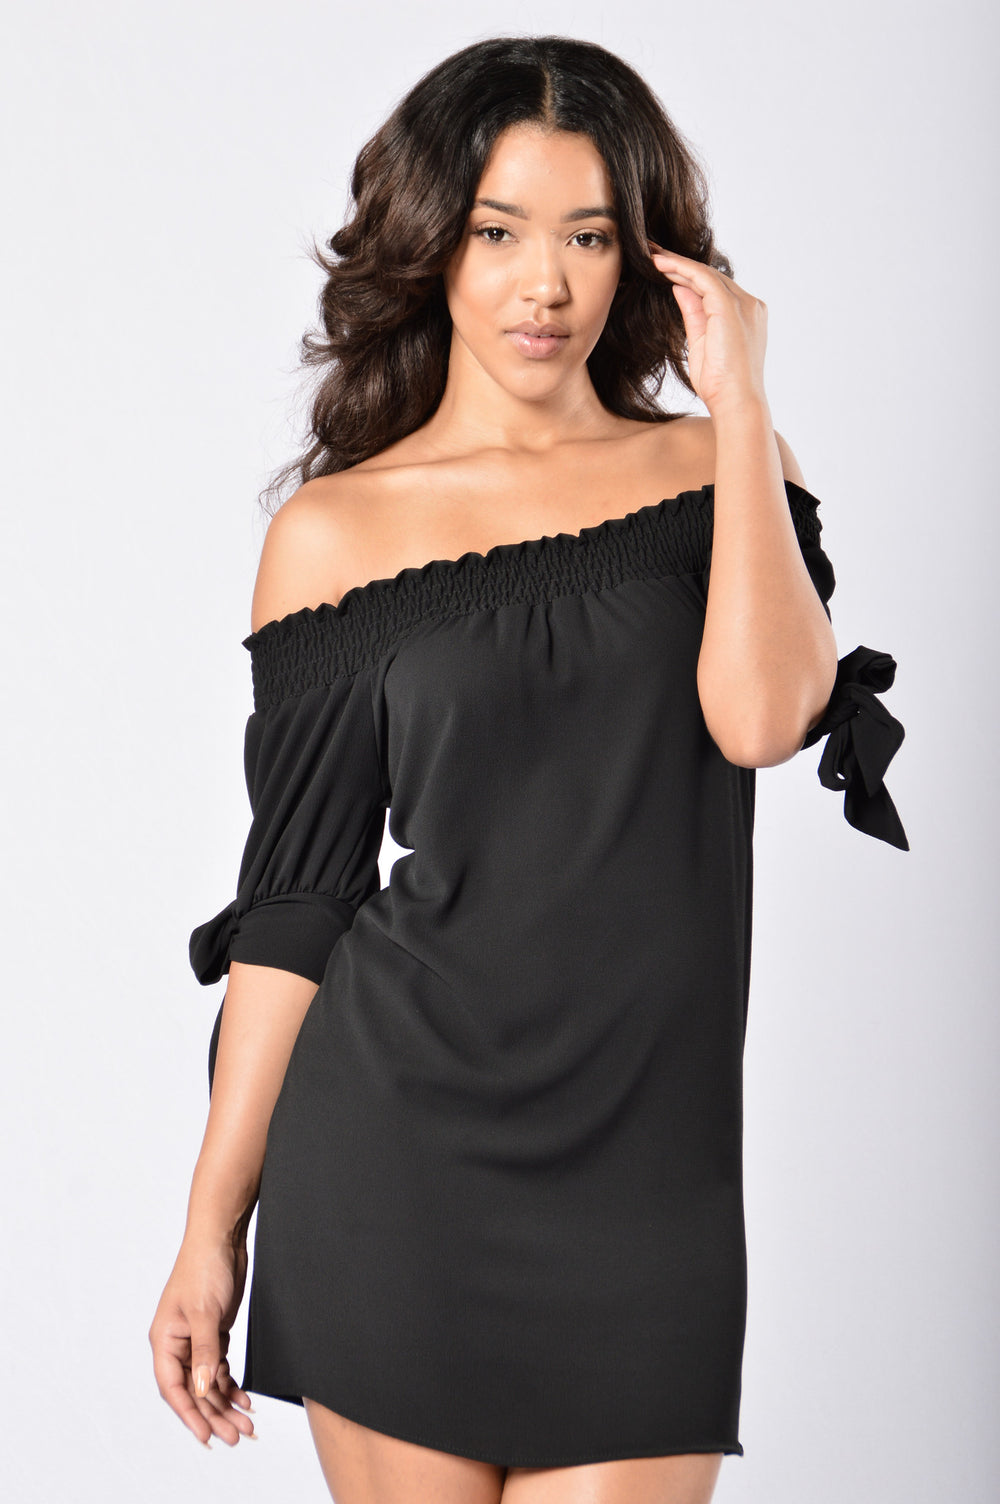 Room for Happiness Dress - Black